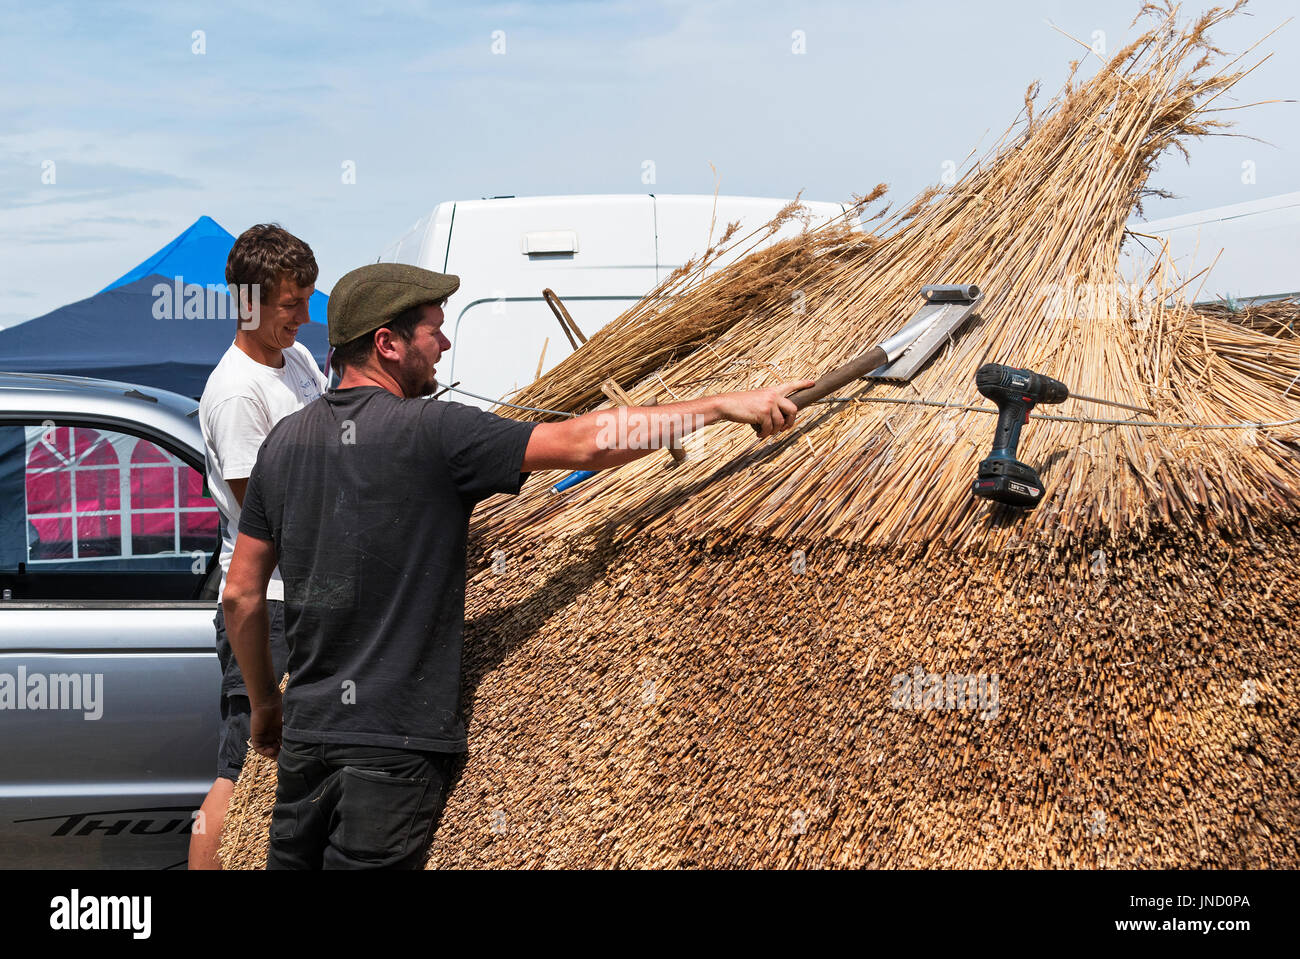 roof thatchers giving an exhibition of thatching skills at a country fair in cornwall, england, uk. - Stock Image